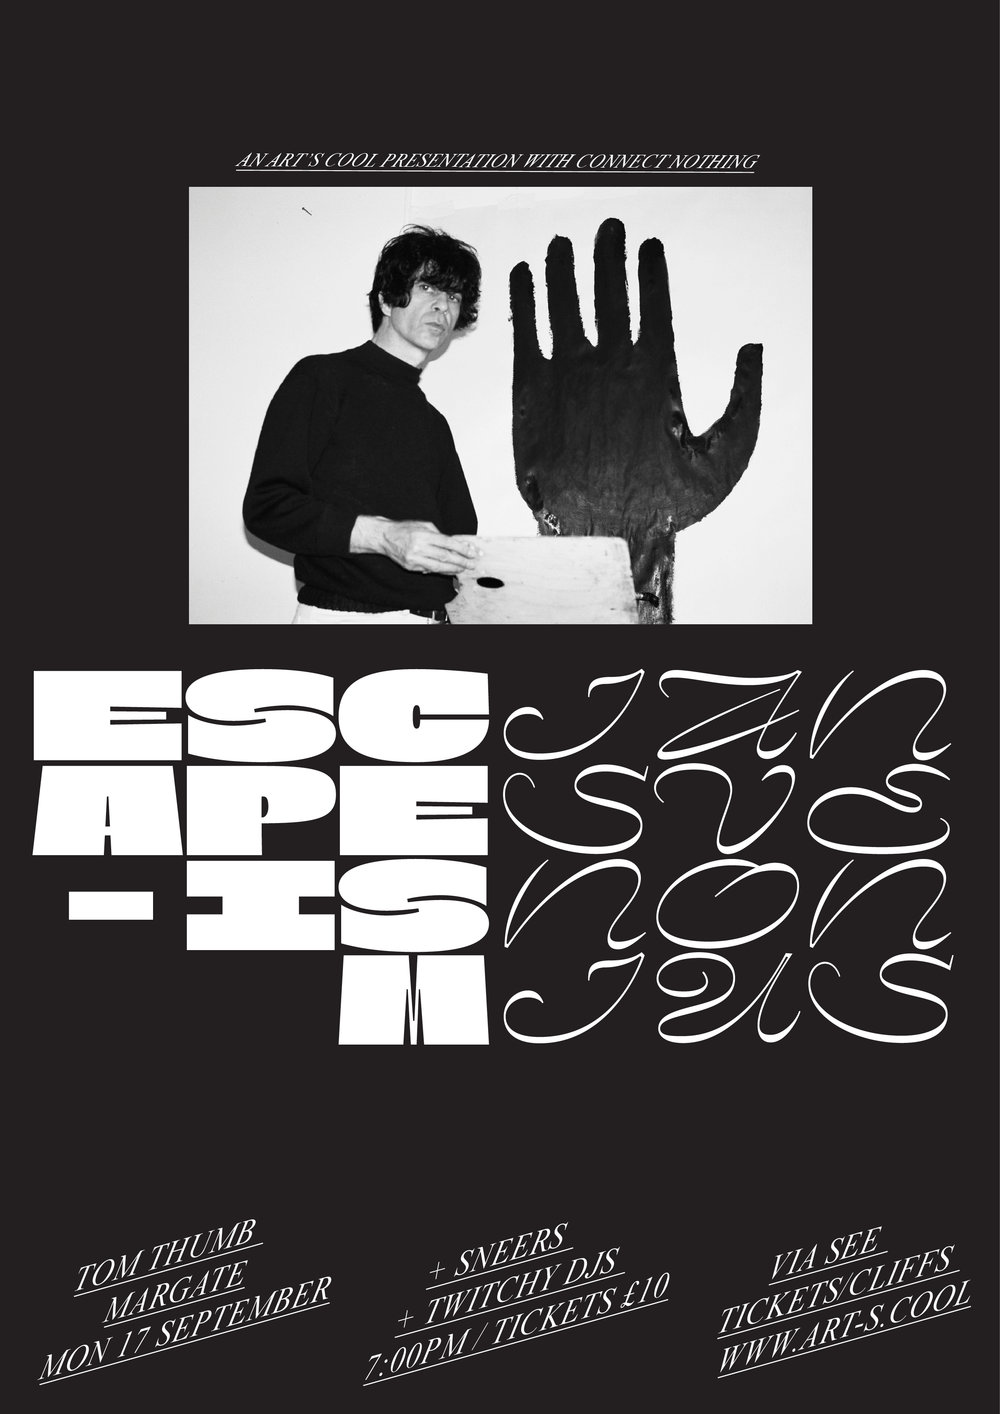 Escape-ism Poster Margate w_ photo.jpg